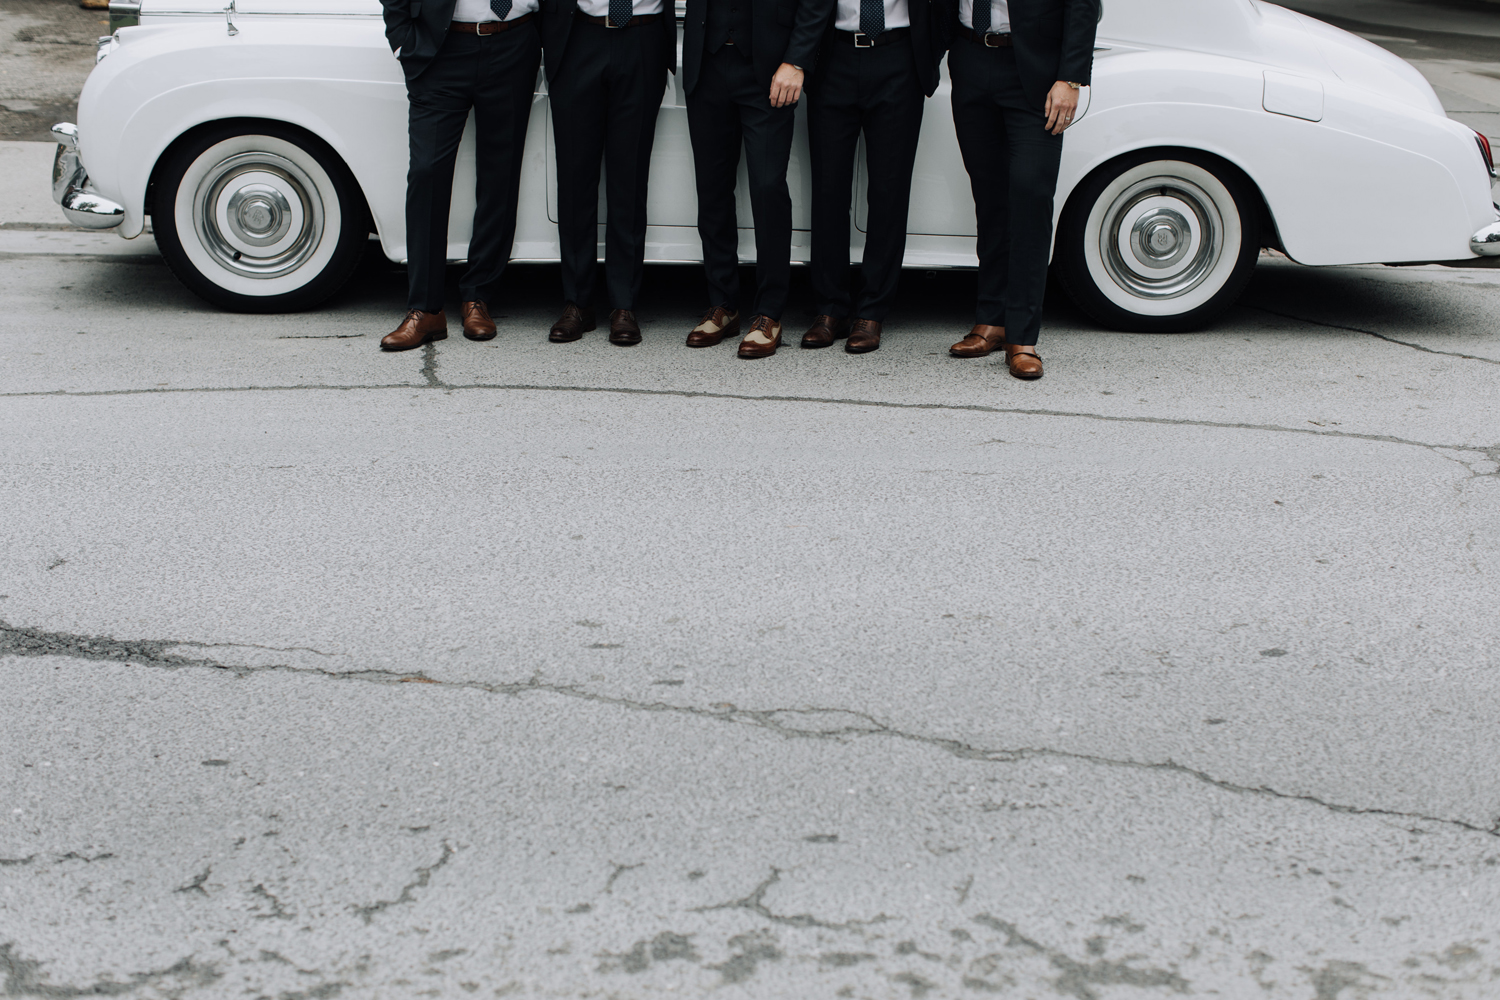 Limo service wedding groomsmen car